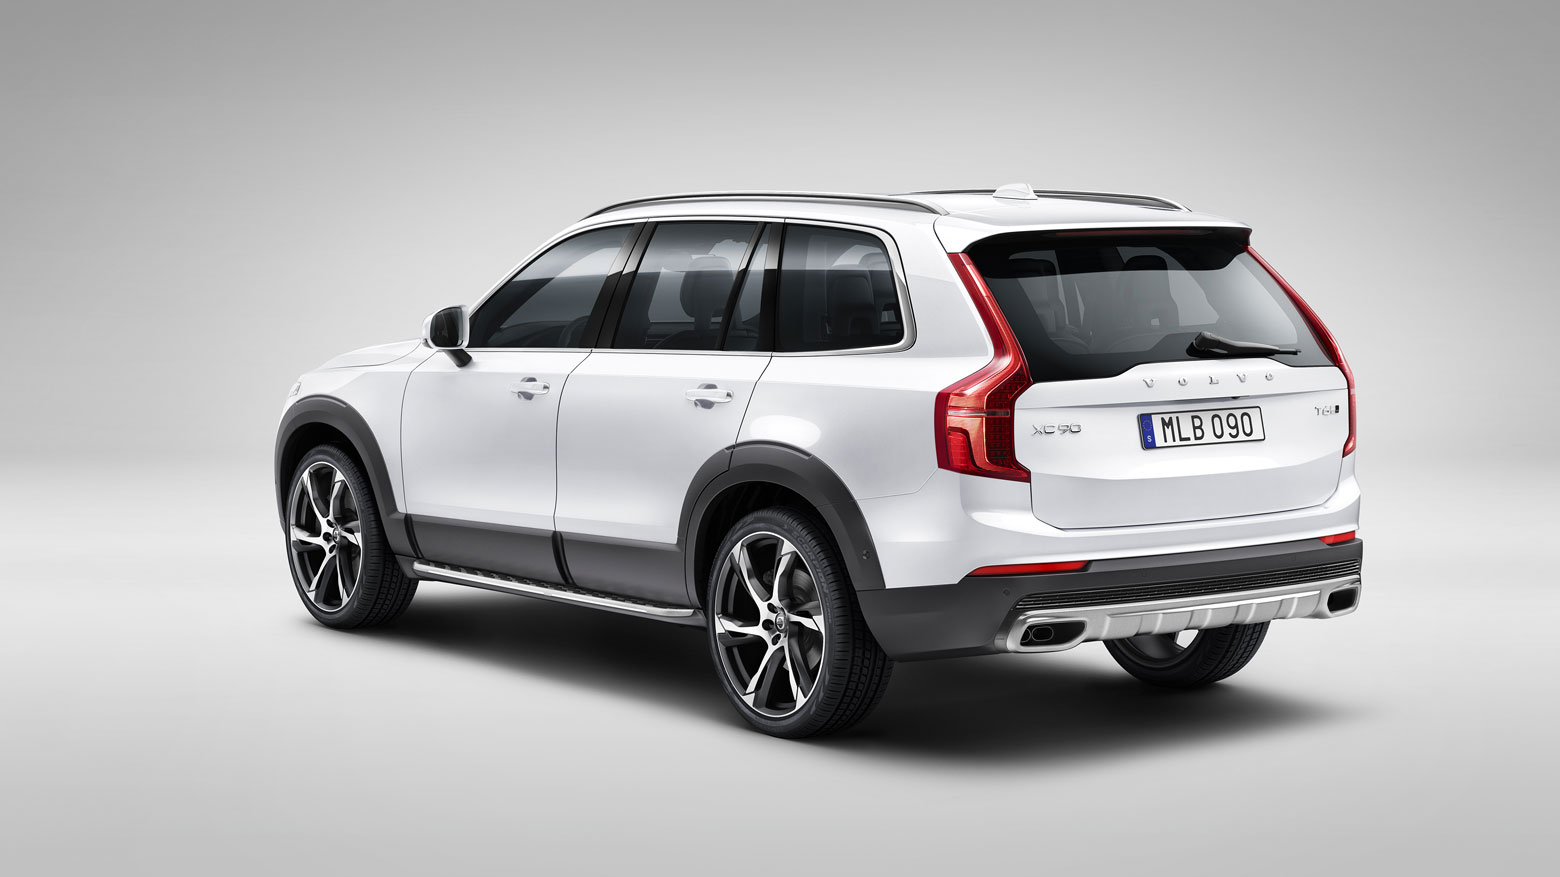 084-Volvo-XC90-Rugged